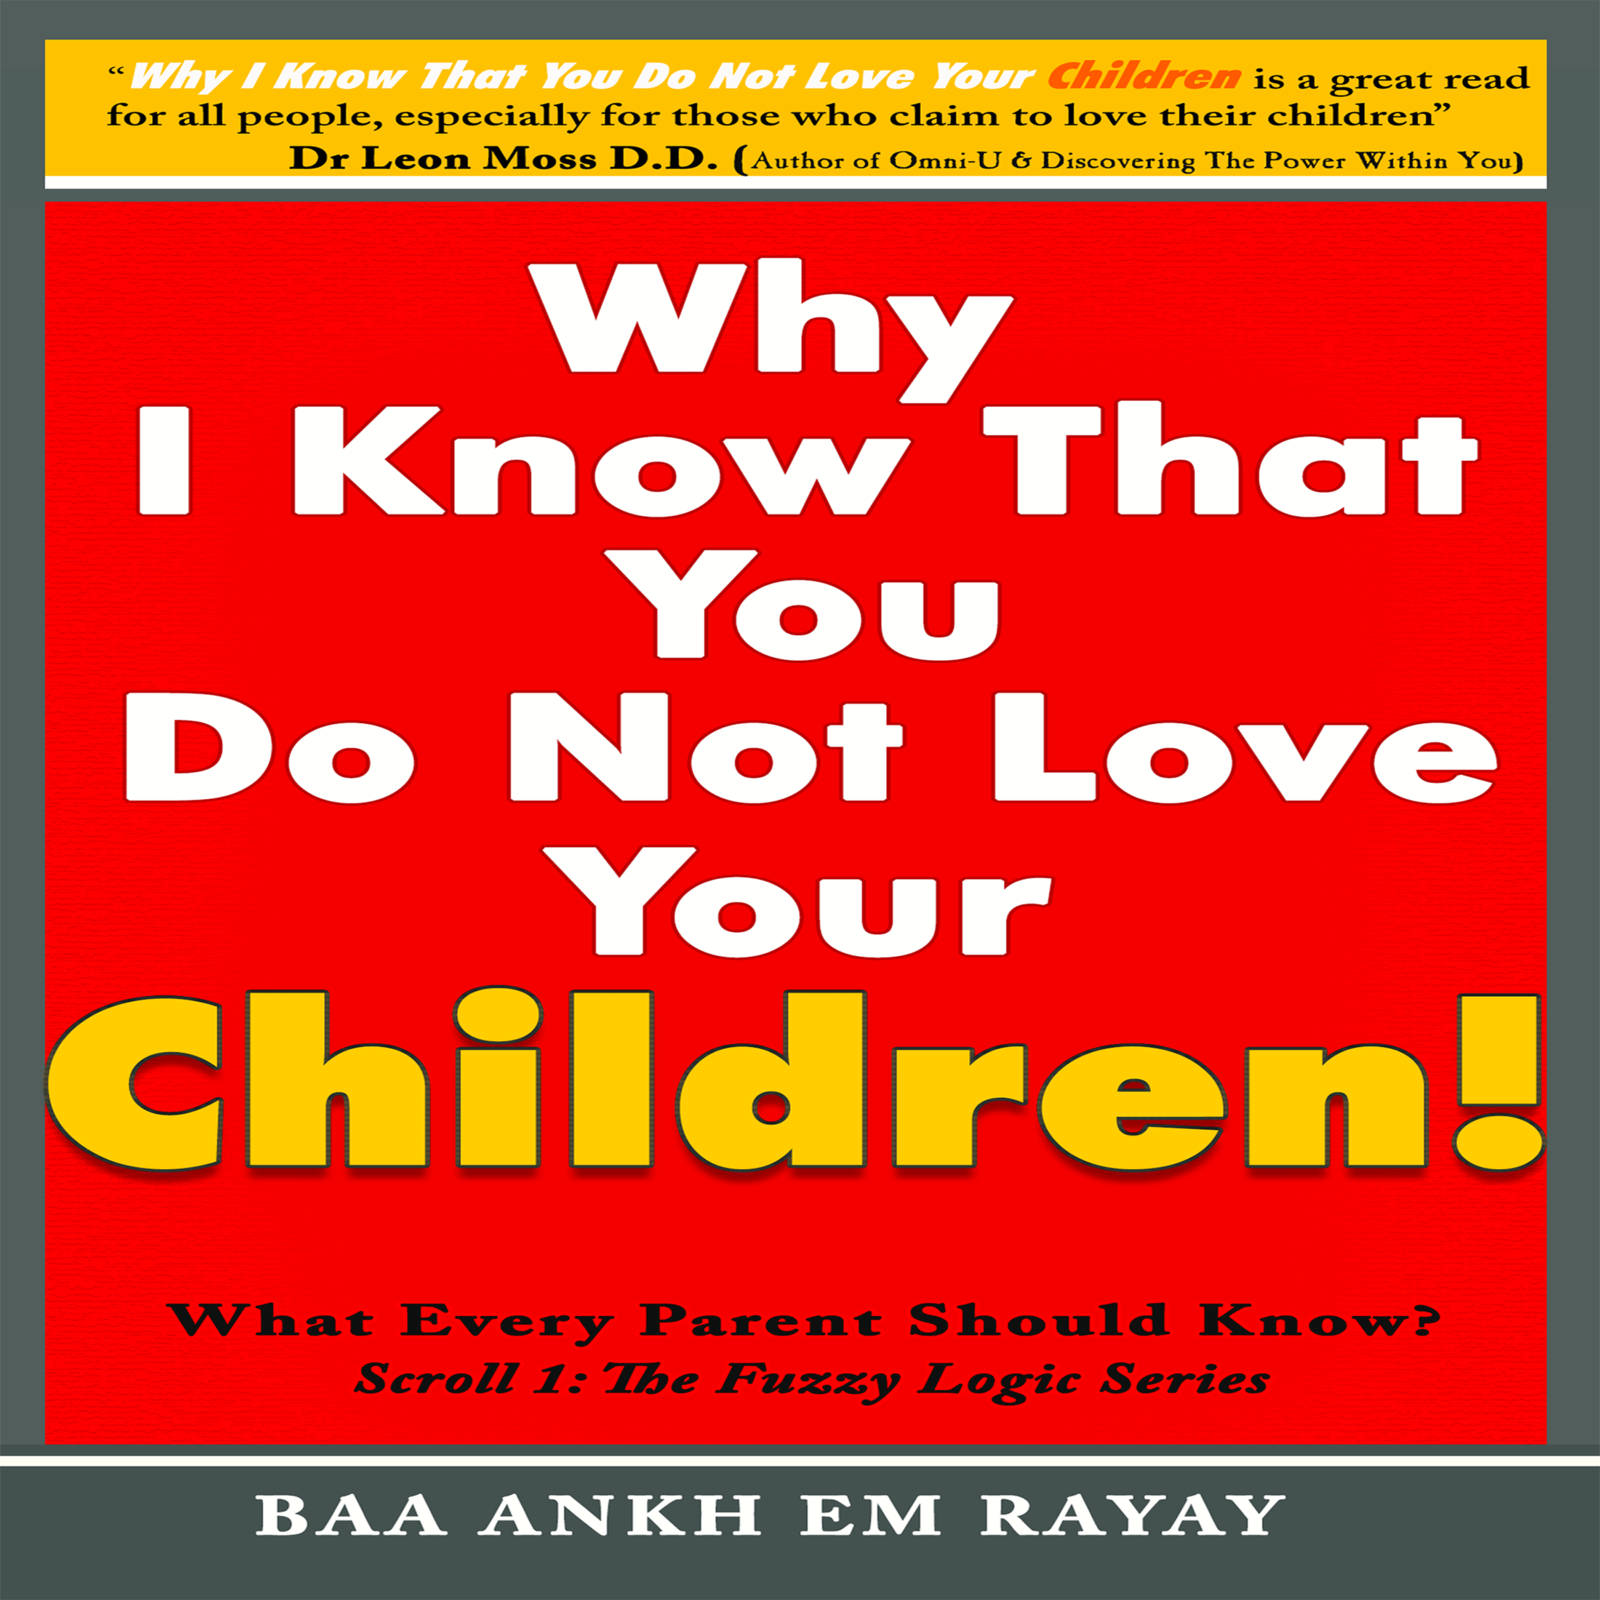 WHY I KNOW THAT YOU DO NOT LOVE YOUR CHILDREN!